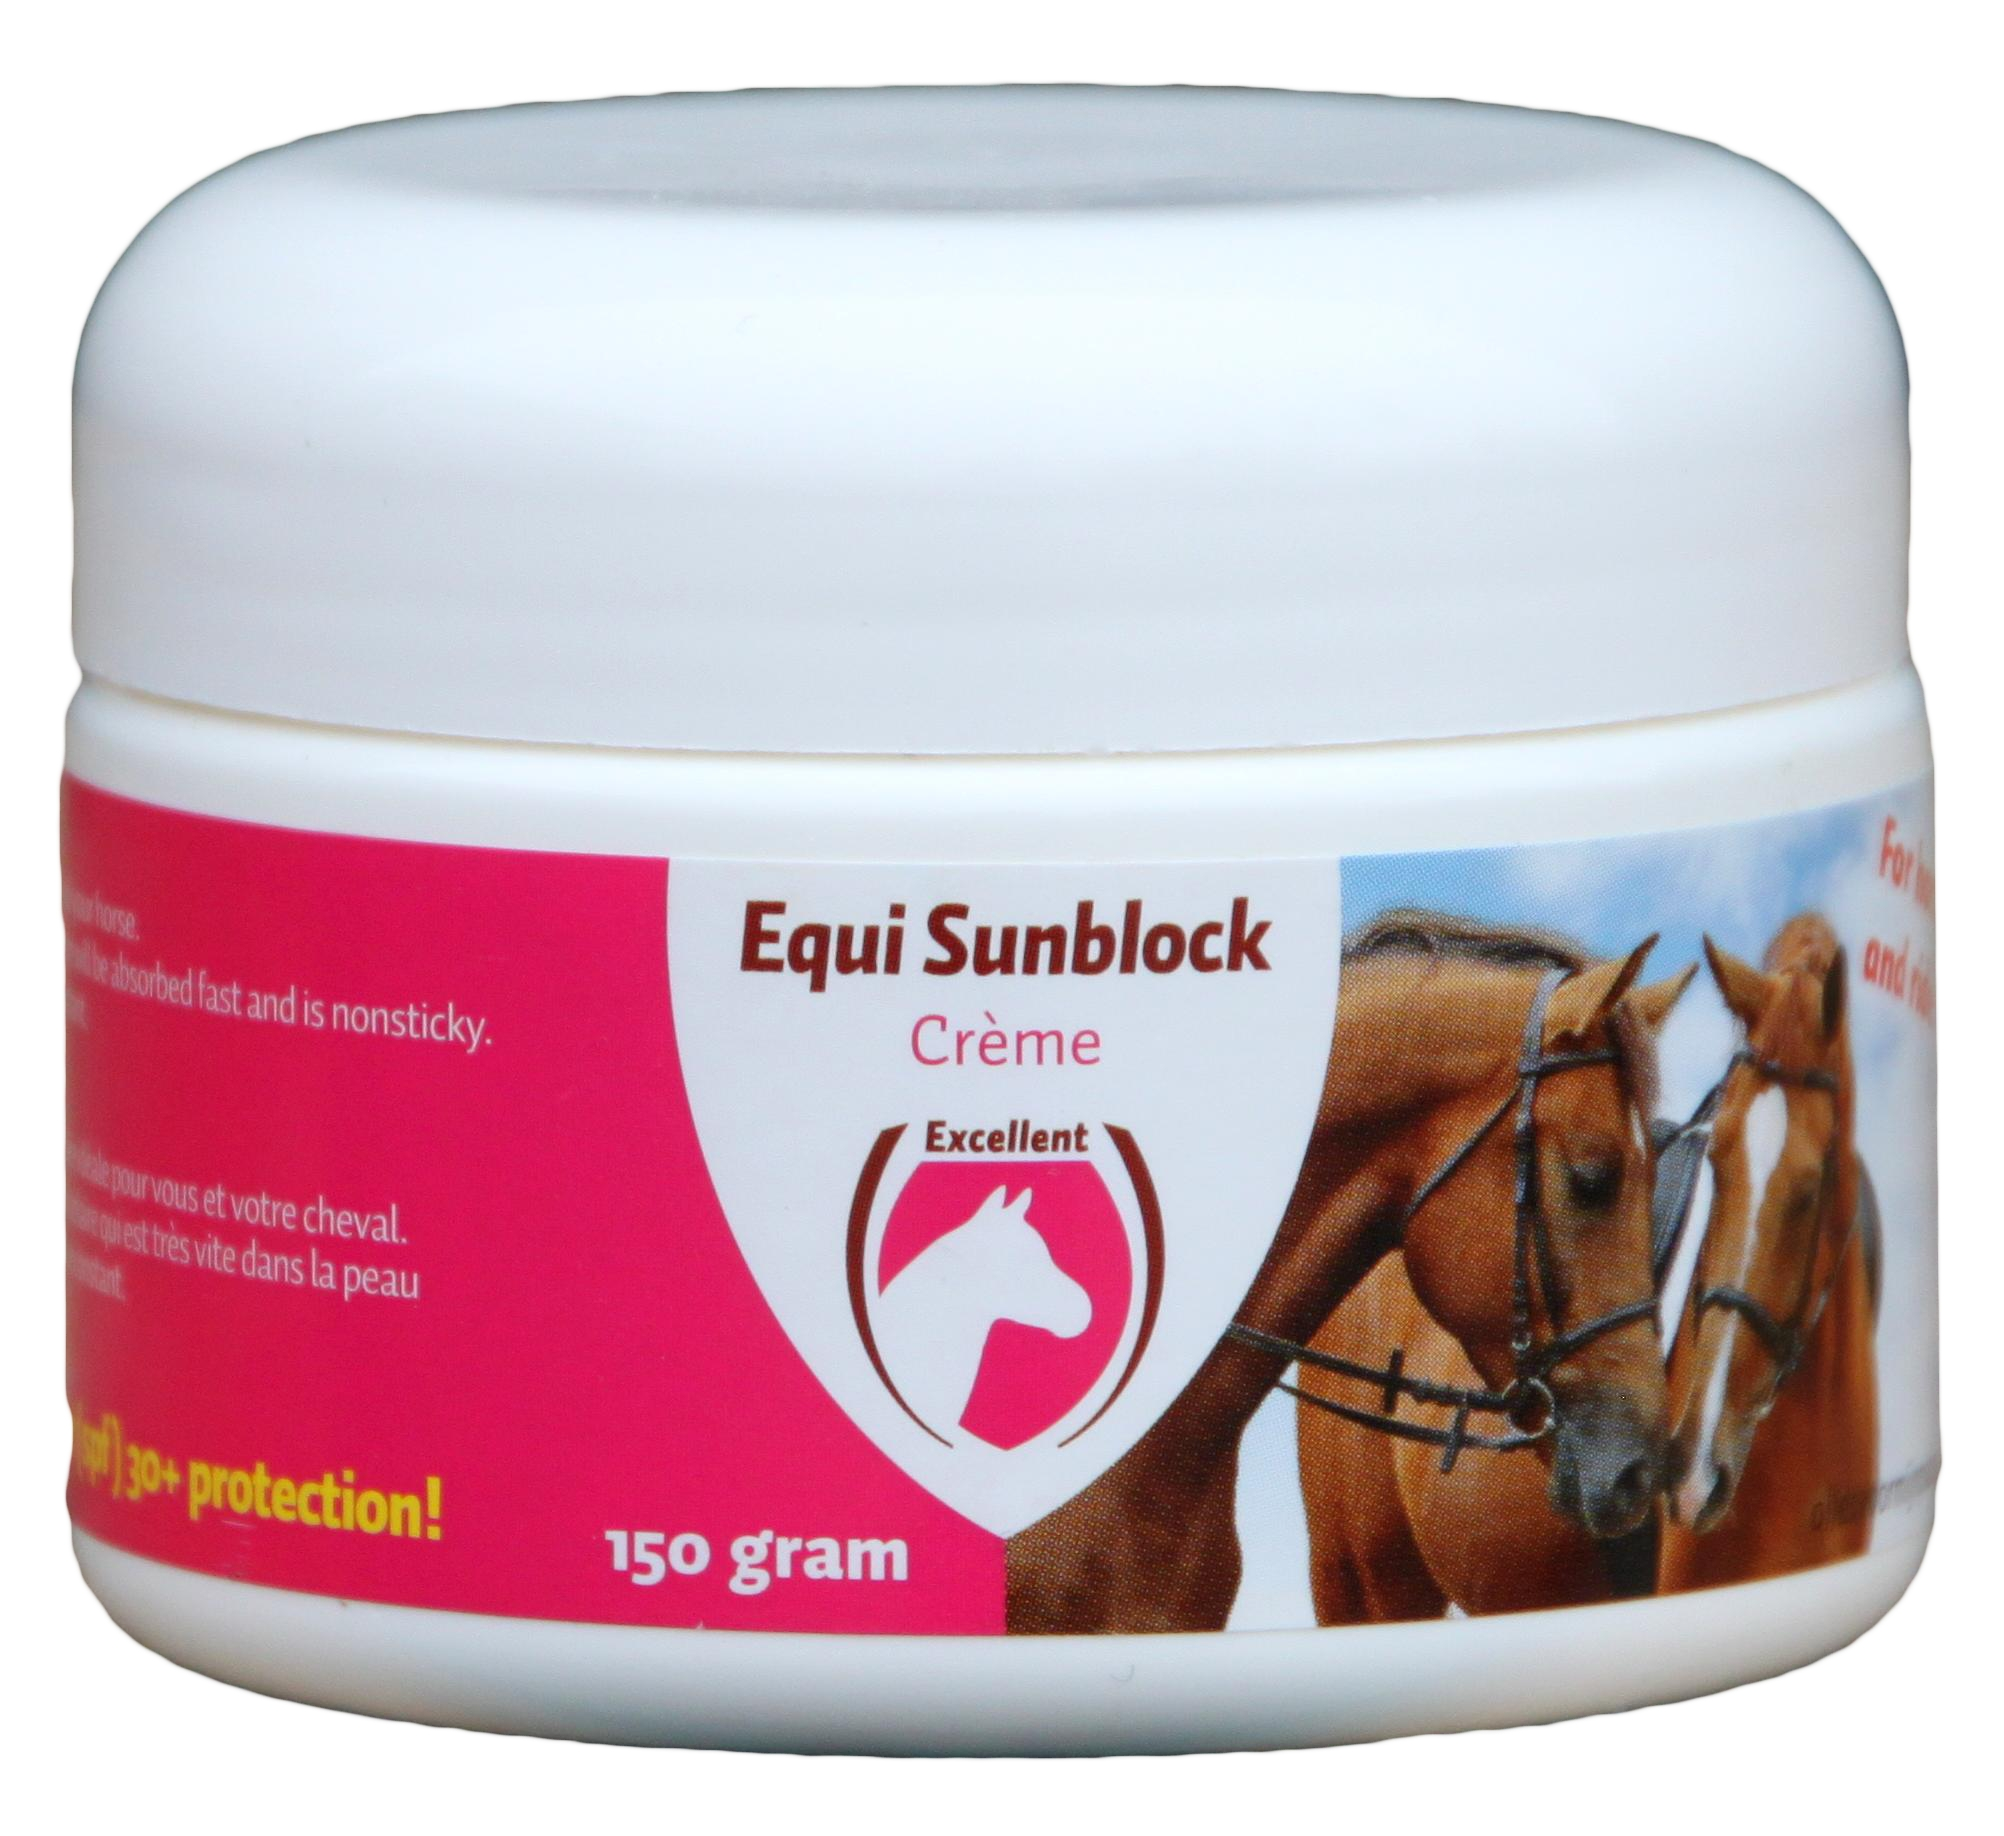 Horse supplies - Ointment, clay and coolinggel for horses - Skin & Eye Medicine.